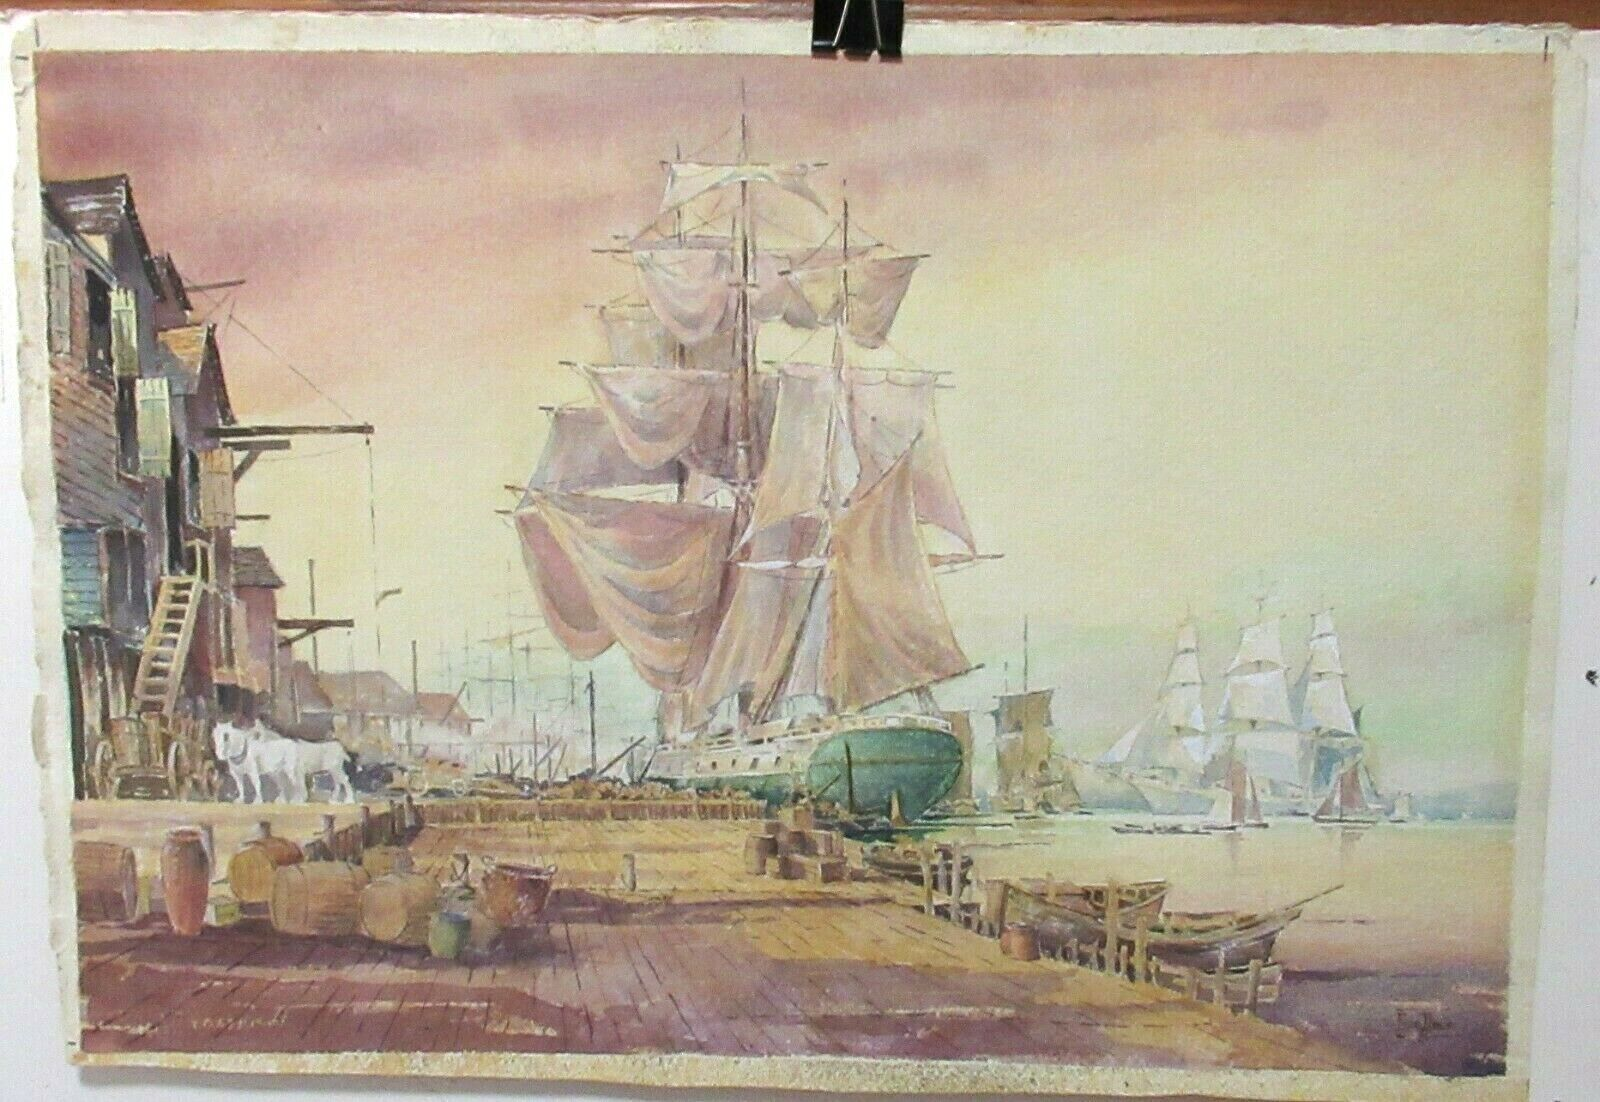 GEORGE DALY SAIL SHIP AT PORT ORIGINAL WATERCOLOR SEASCAPE PAINTING DATED 1971 - $695.00